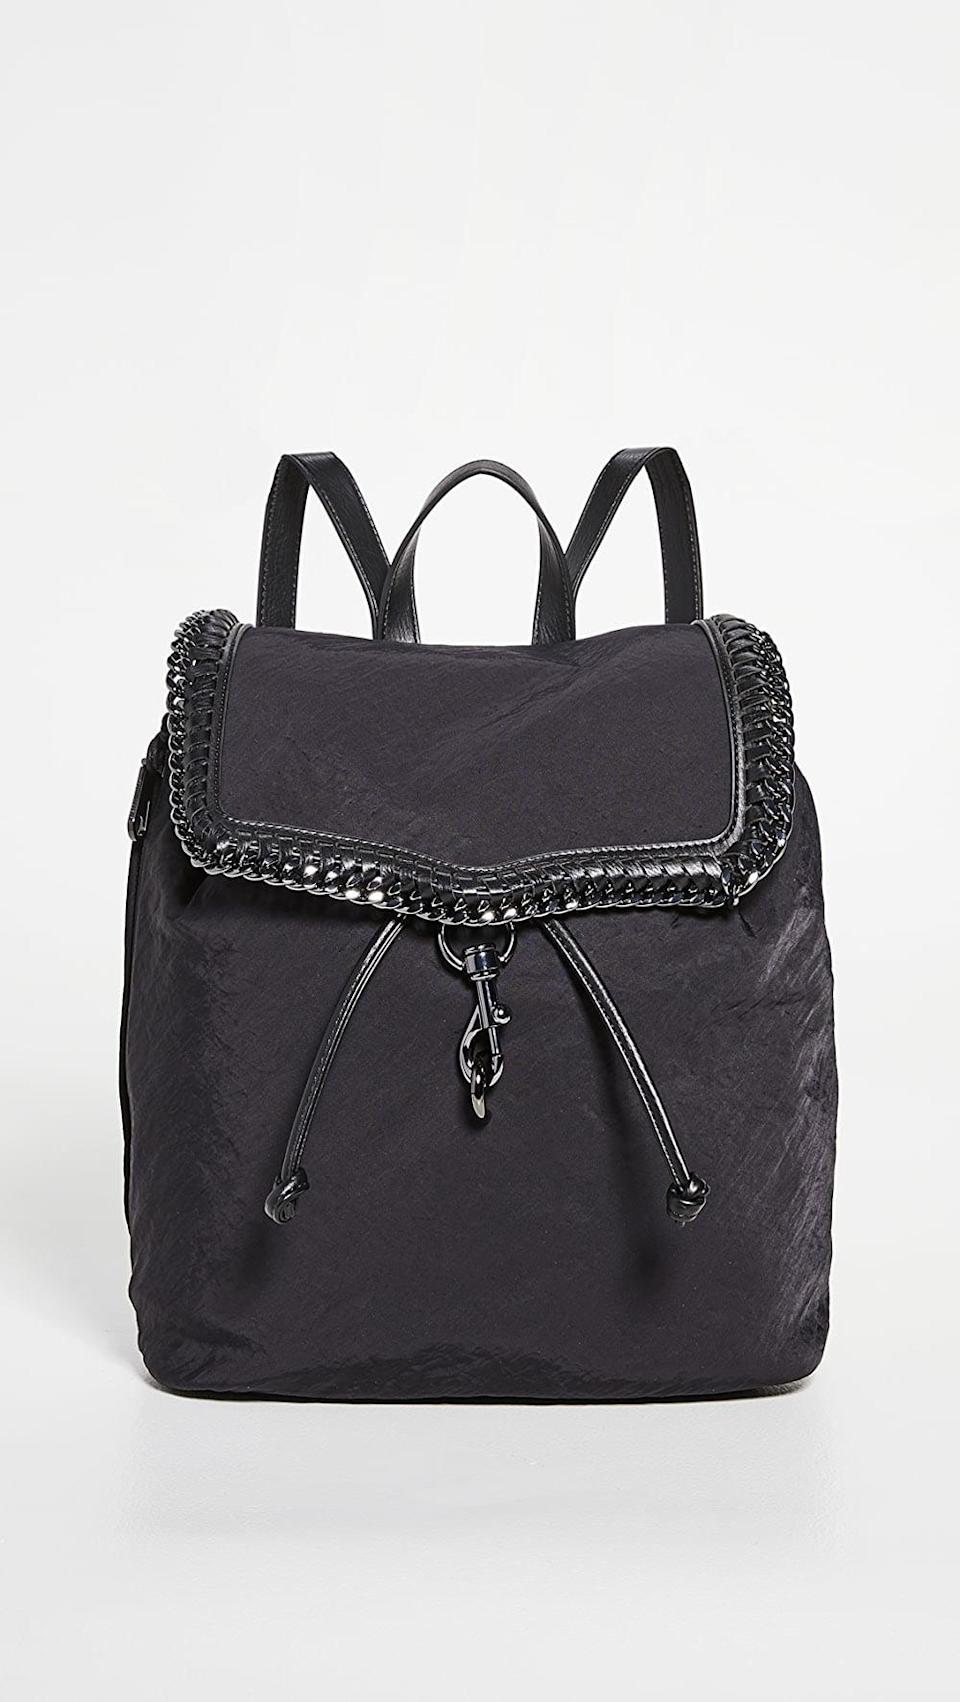 <p>We love the embellished look of this <span>Rebecca Minkoff Woven Chain Backpack</span> ($228).</p>